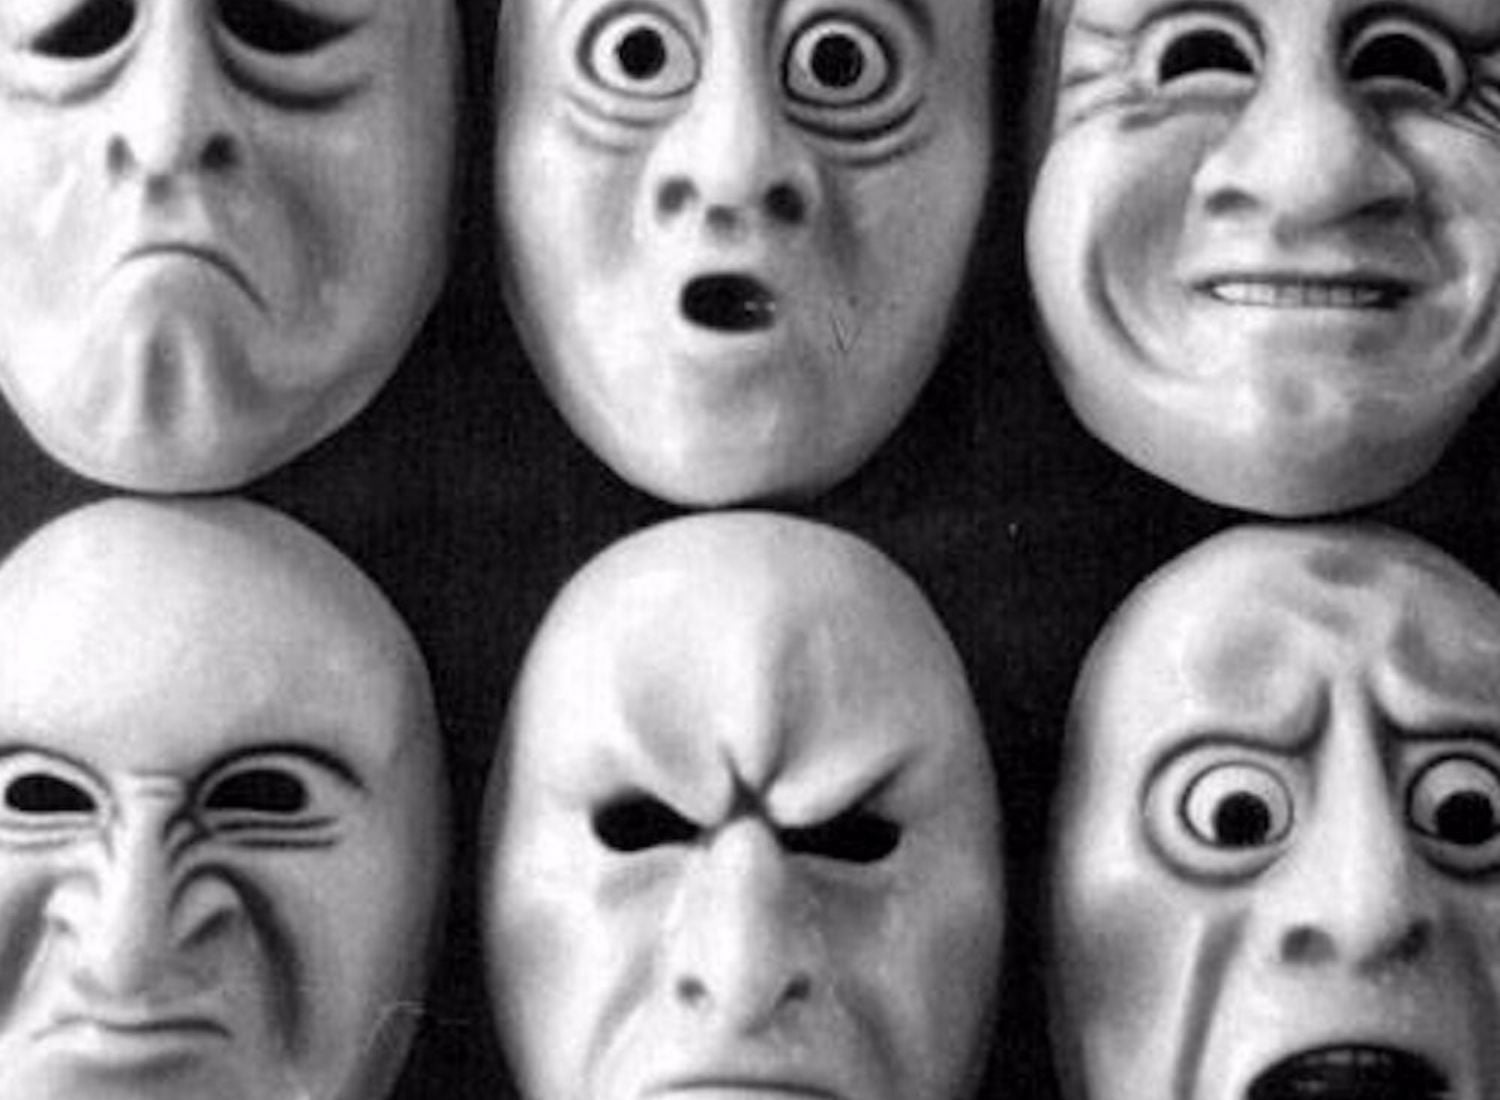 Emotional Intelligence: How To Deal With People